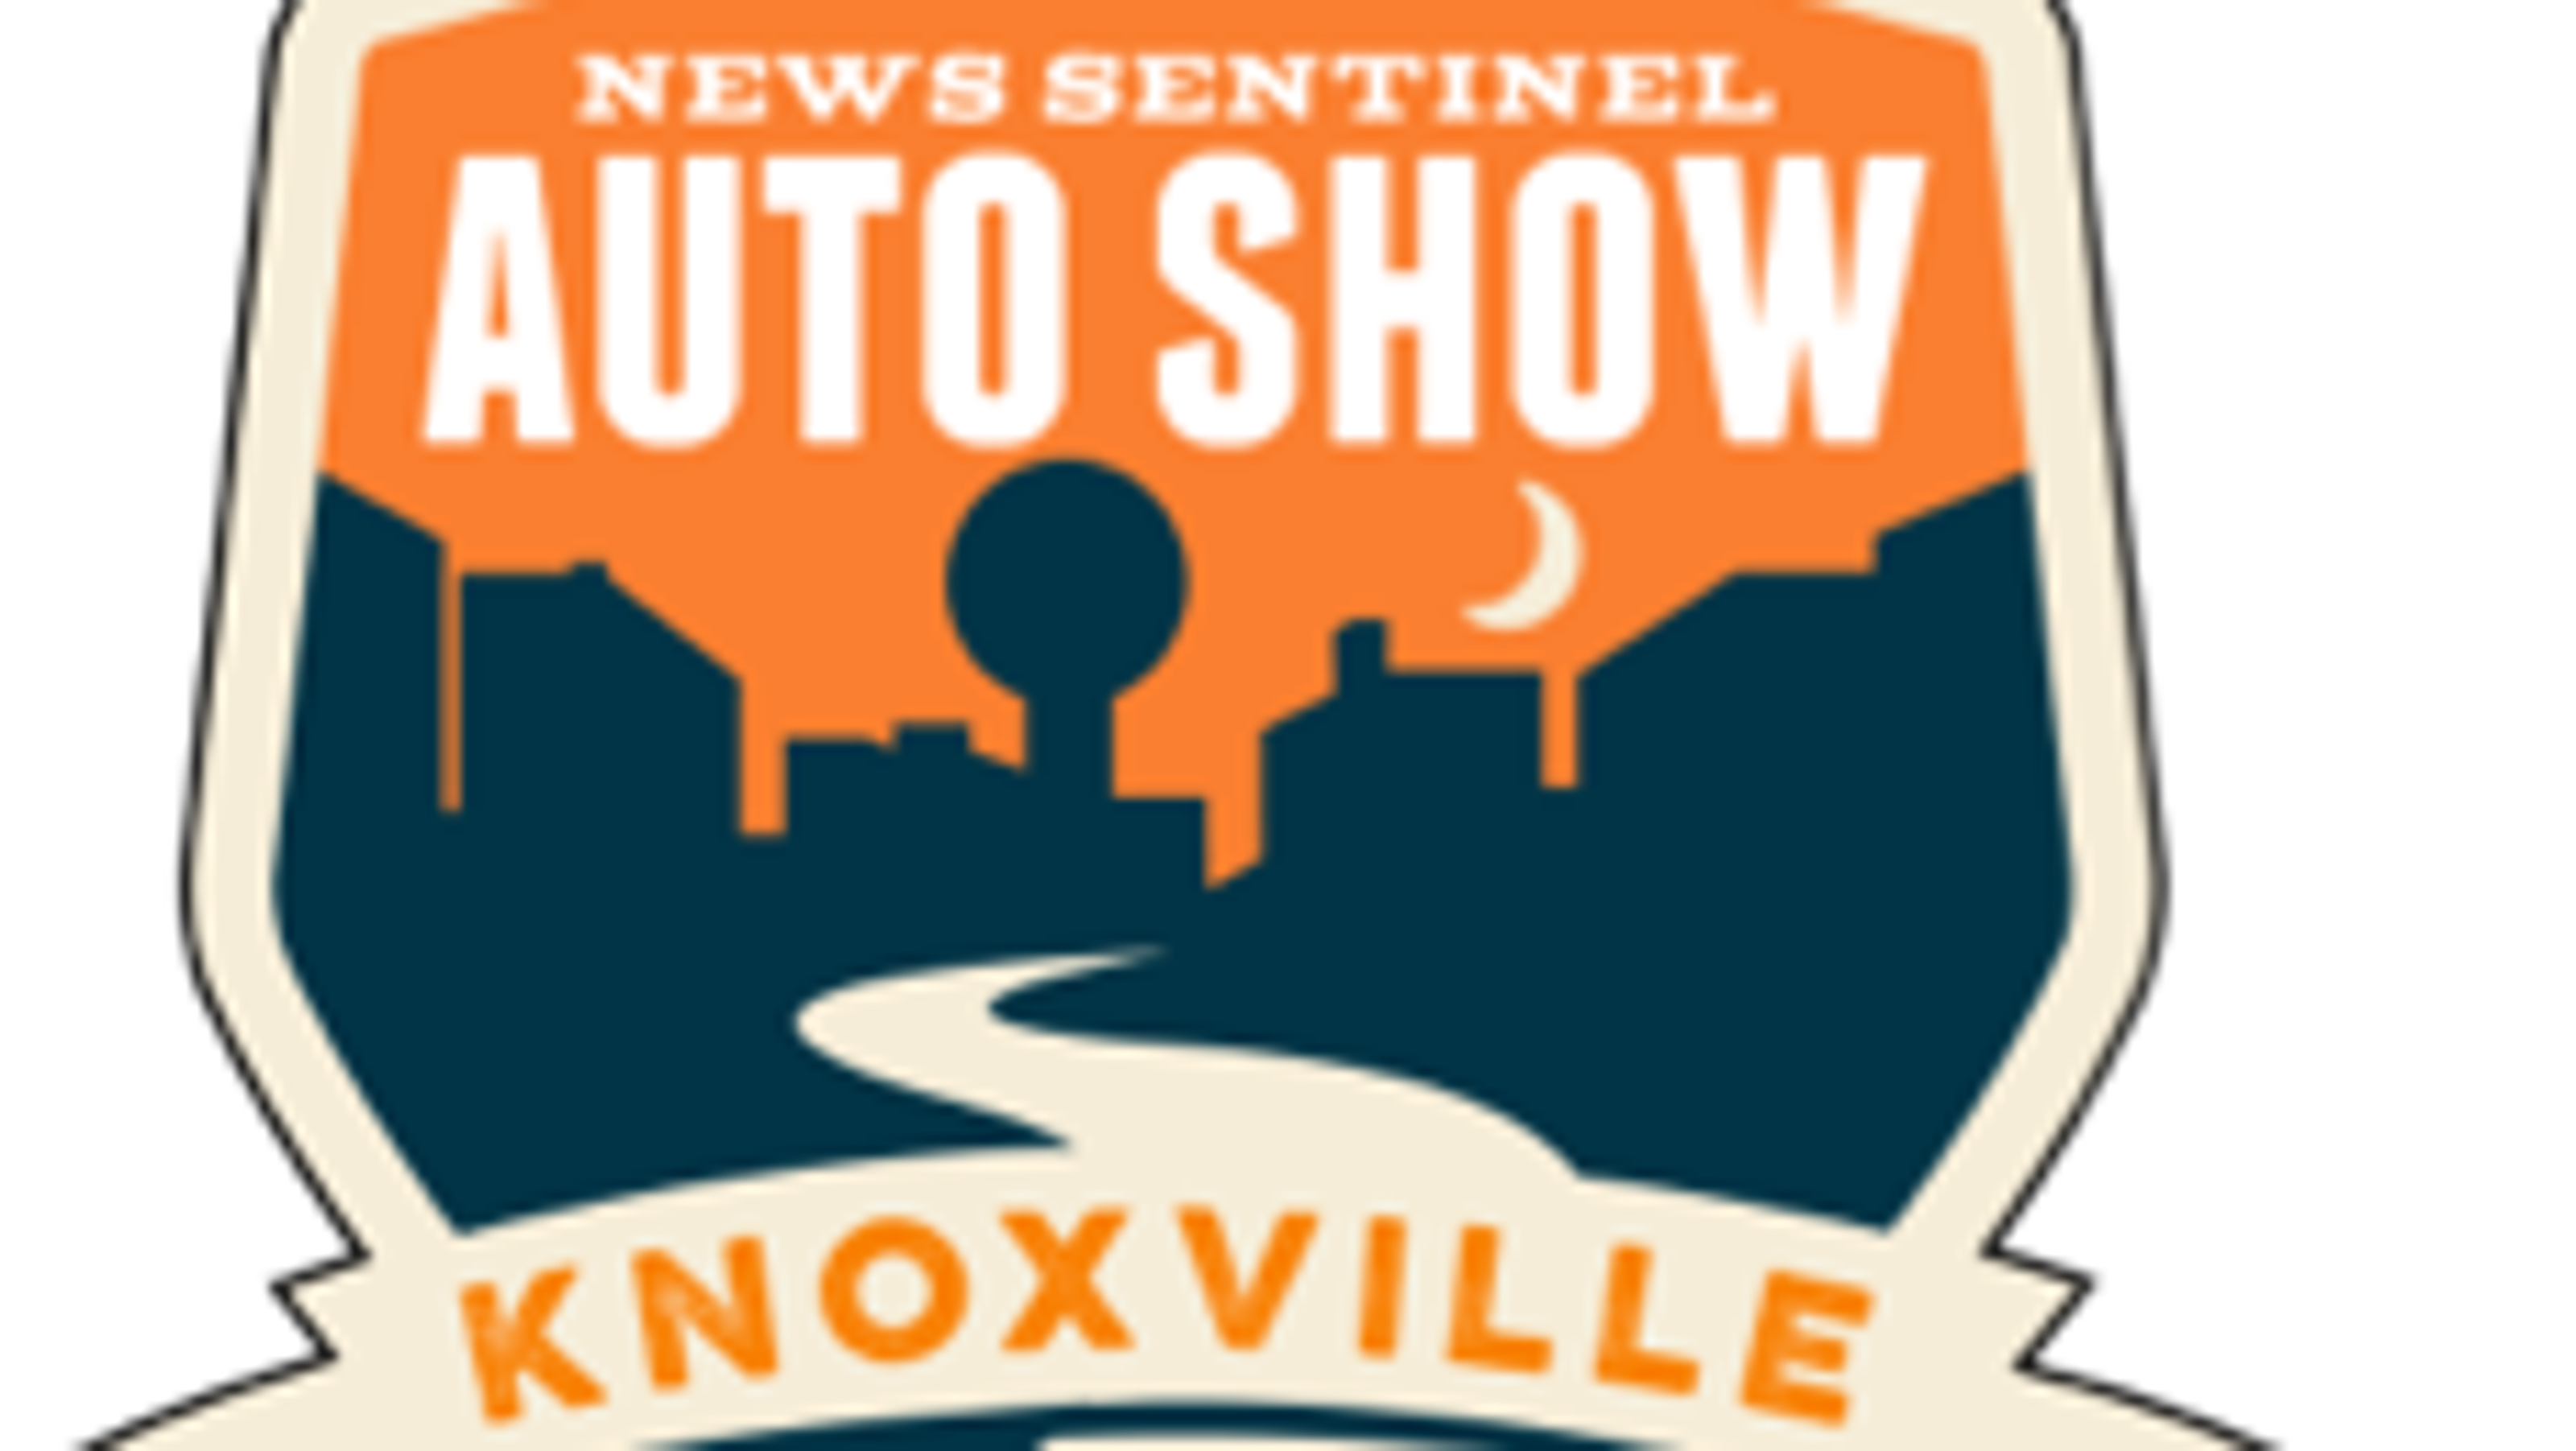 News Sentinel Auto Show at Knoxville Convention Center on Feb 23 25